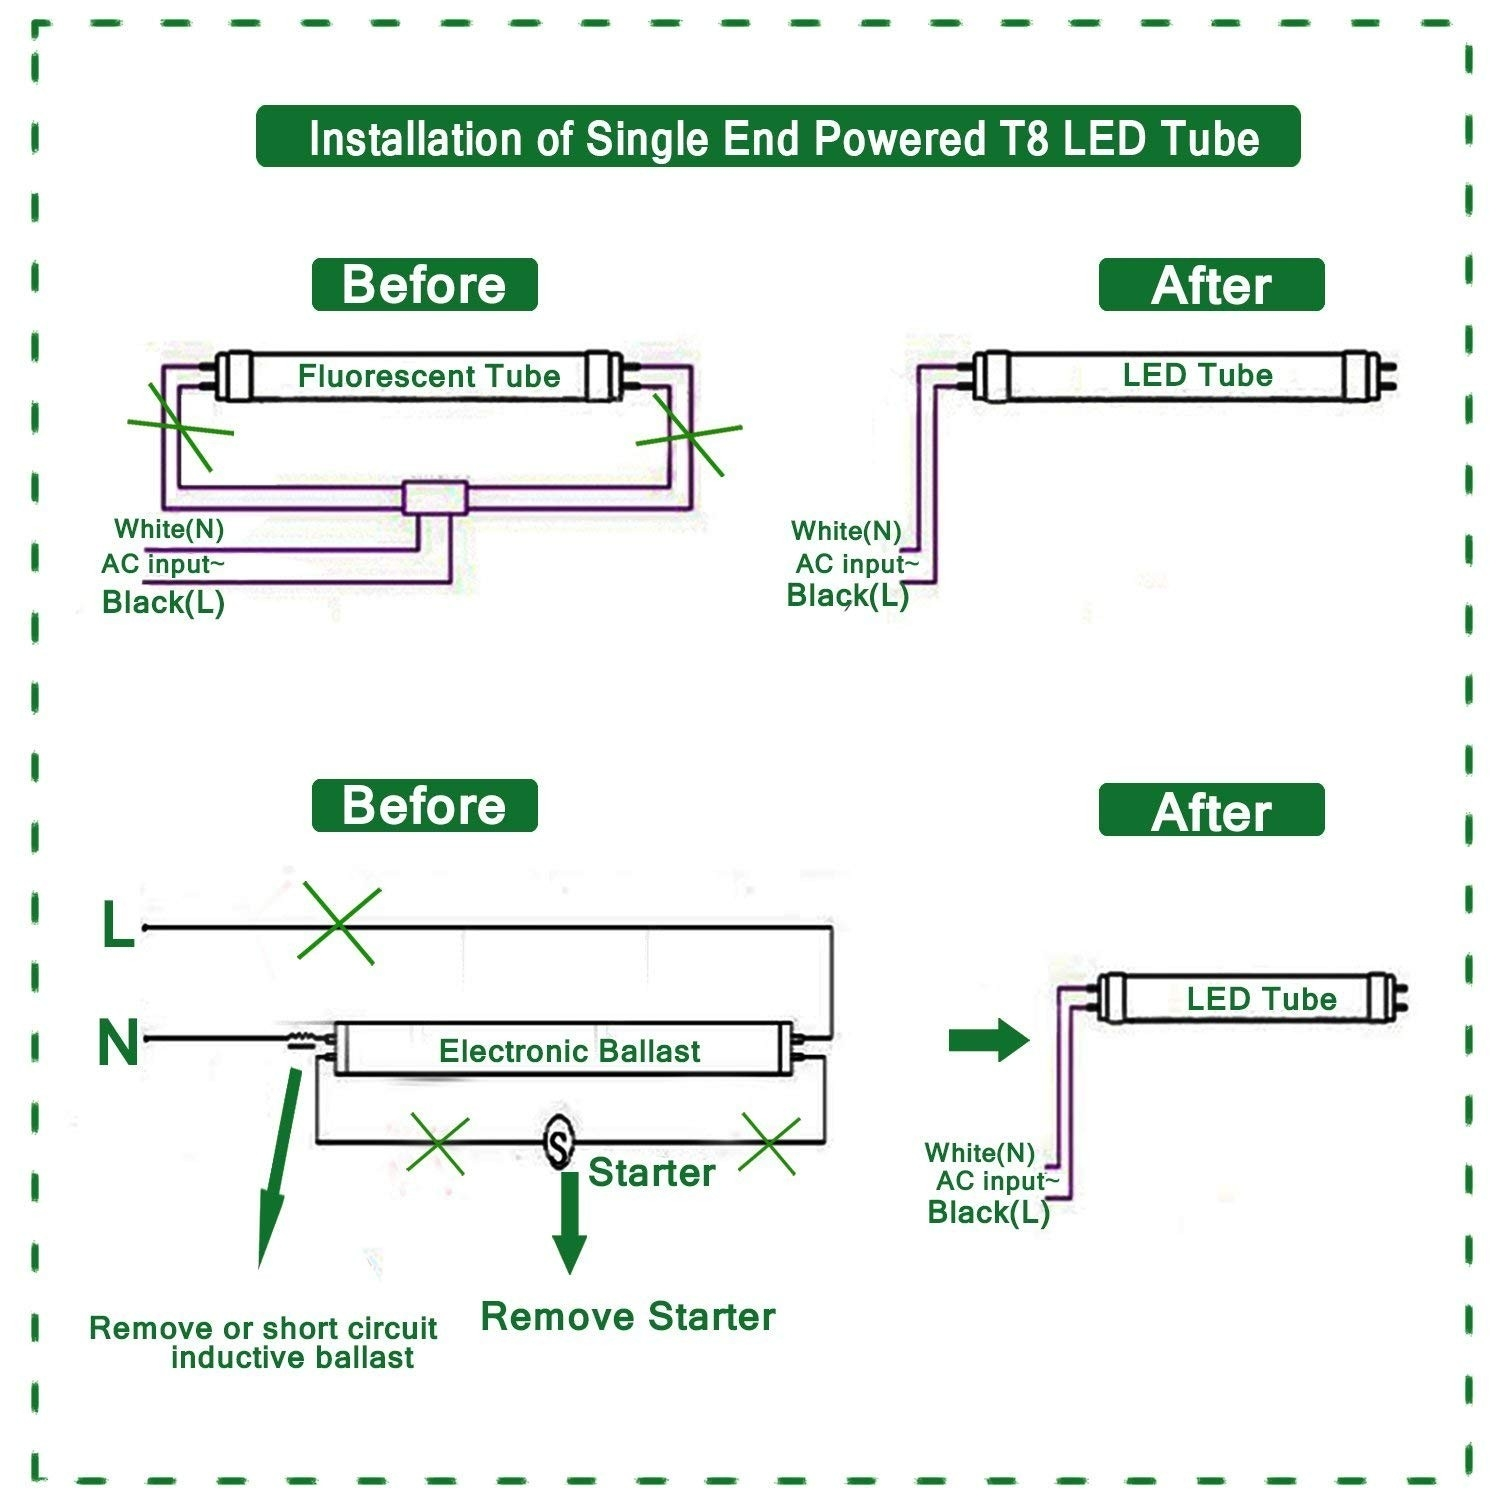 wiring diagram for led tube lights Collection-Wiring Diagram for Led Tubes New Wiring Diagram Led Tube Philips Refrence T8 Led Tube Wiring 15-q